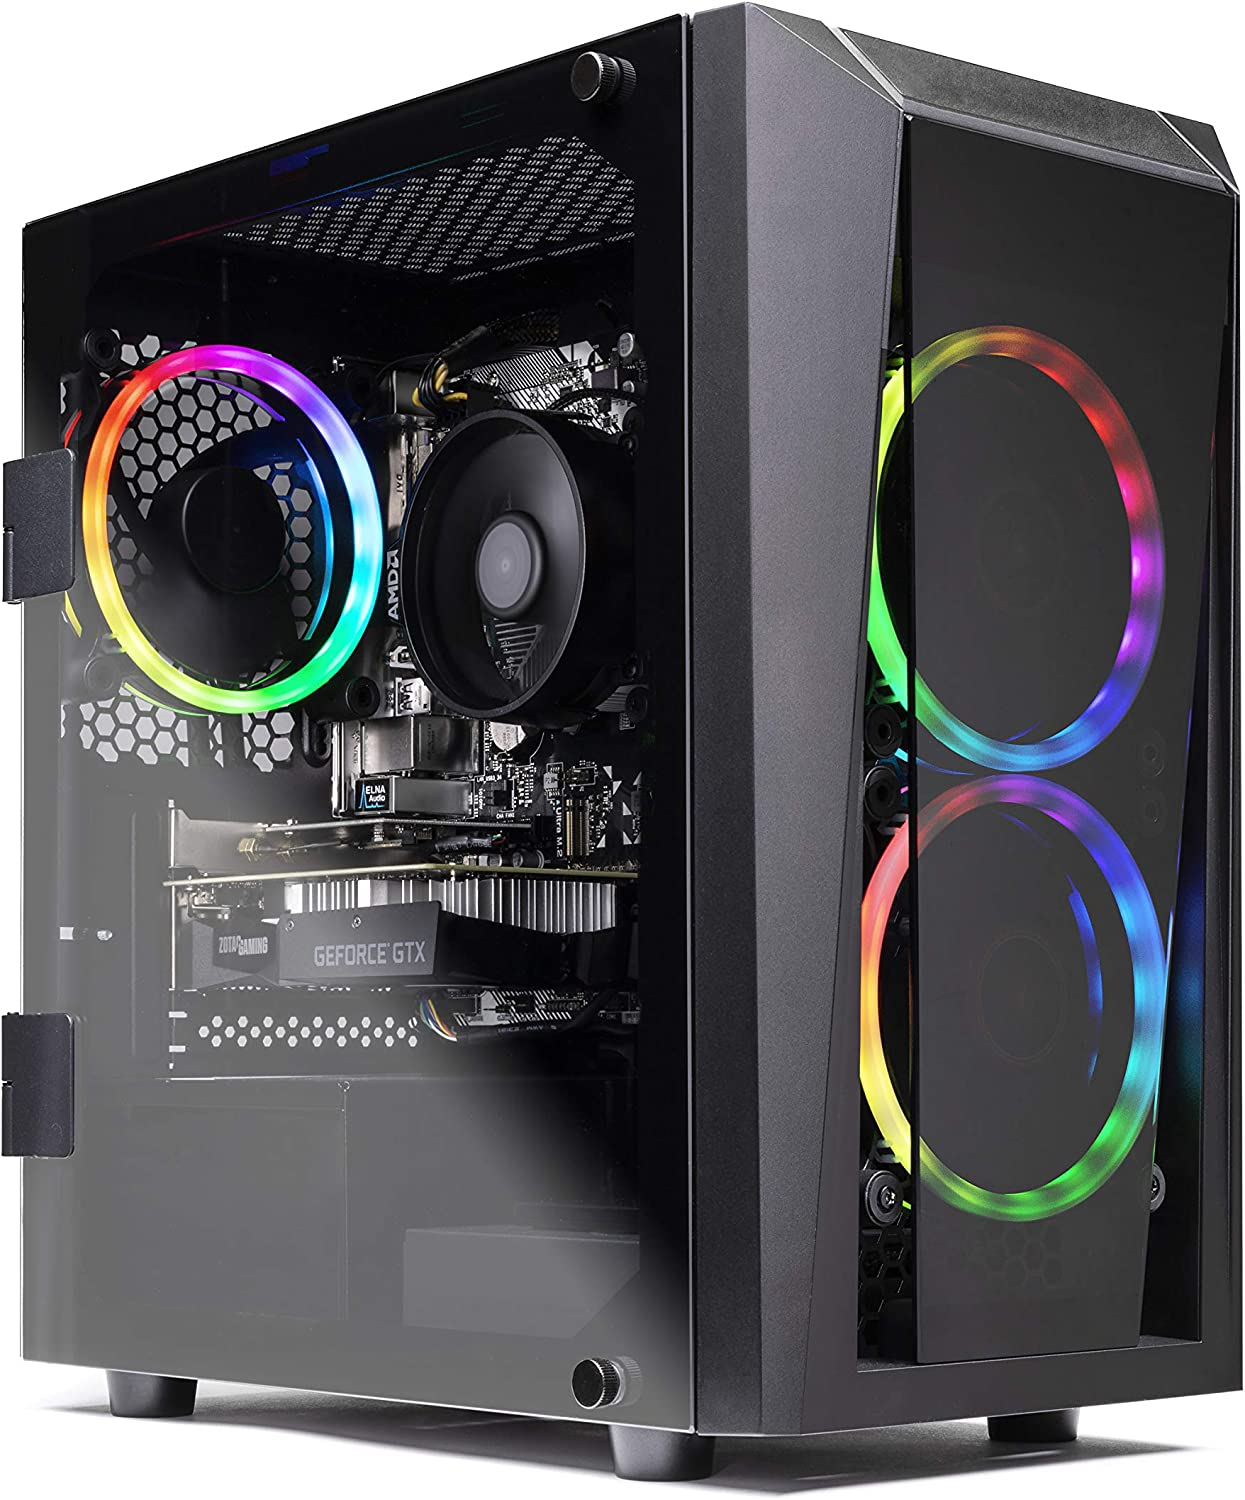 Skytech Blaze II Gaming Computer PC Desktop – RYZEN 7 2700X 8-core 3.7 GHz, RTX 2060 Super 8G, 500GB SSD, 16GB DDR4 3000MHz, RGB Fans, Windows 10 Home